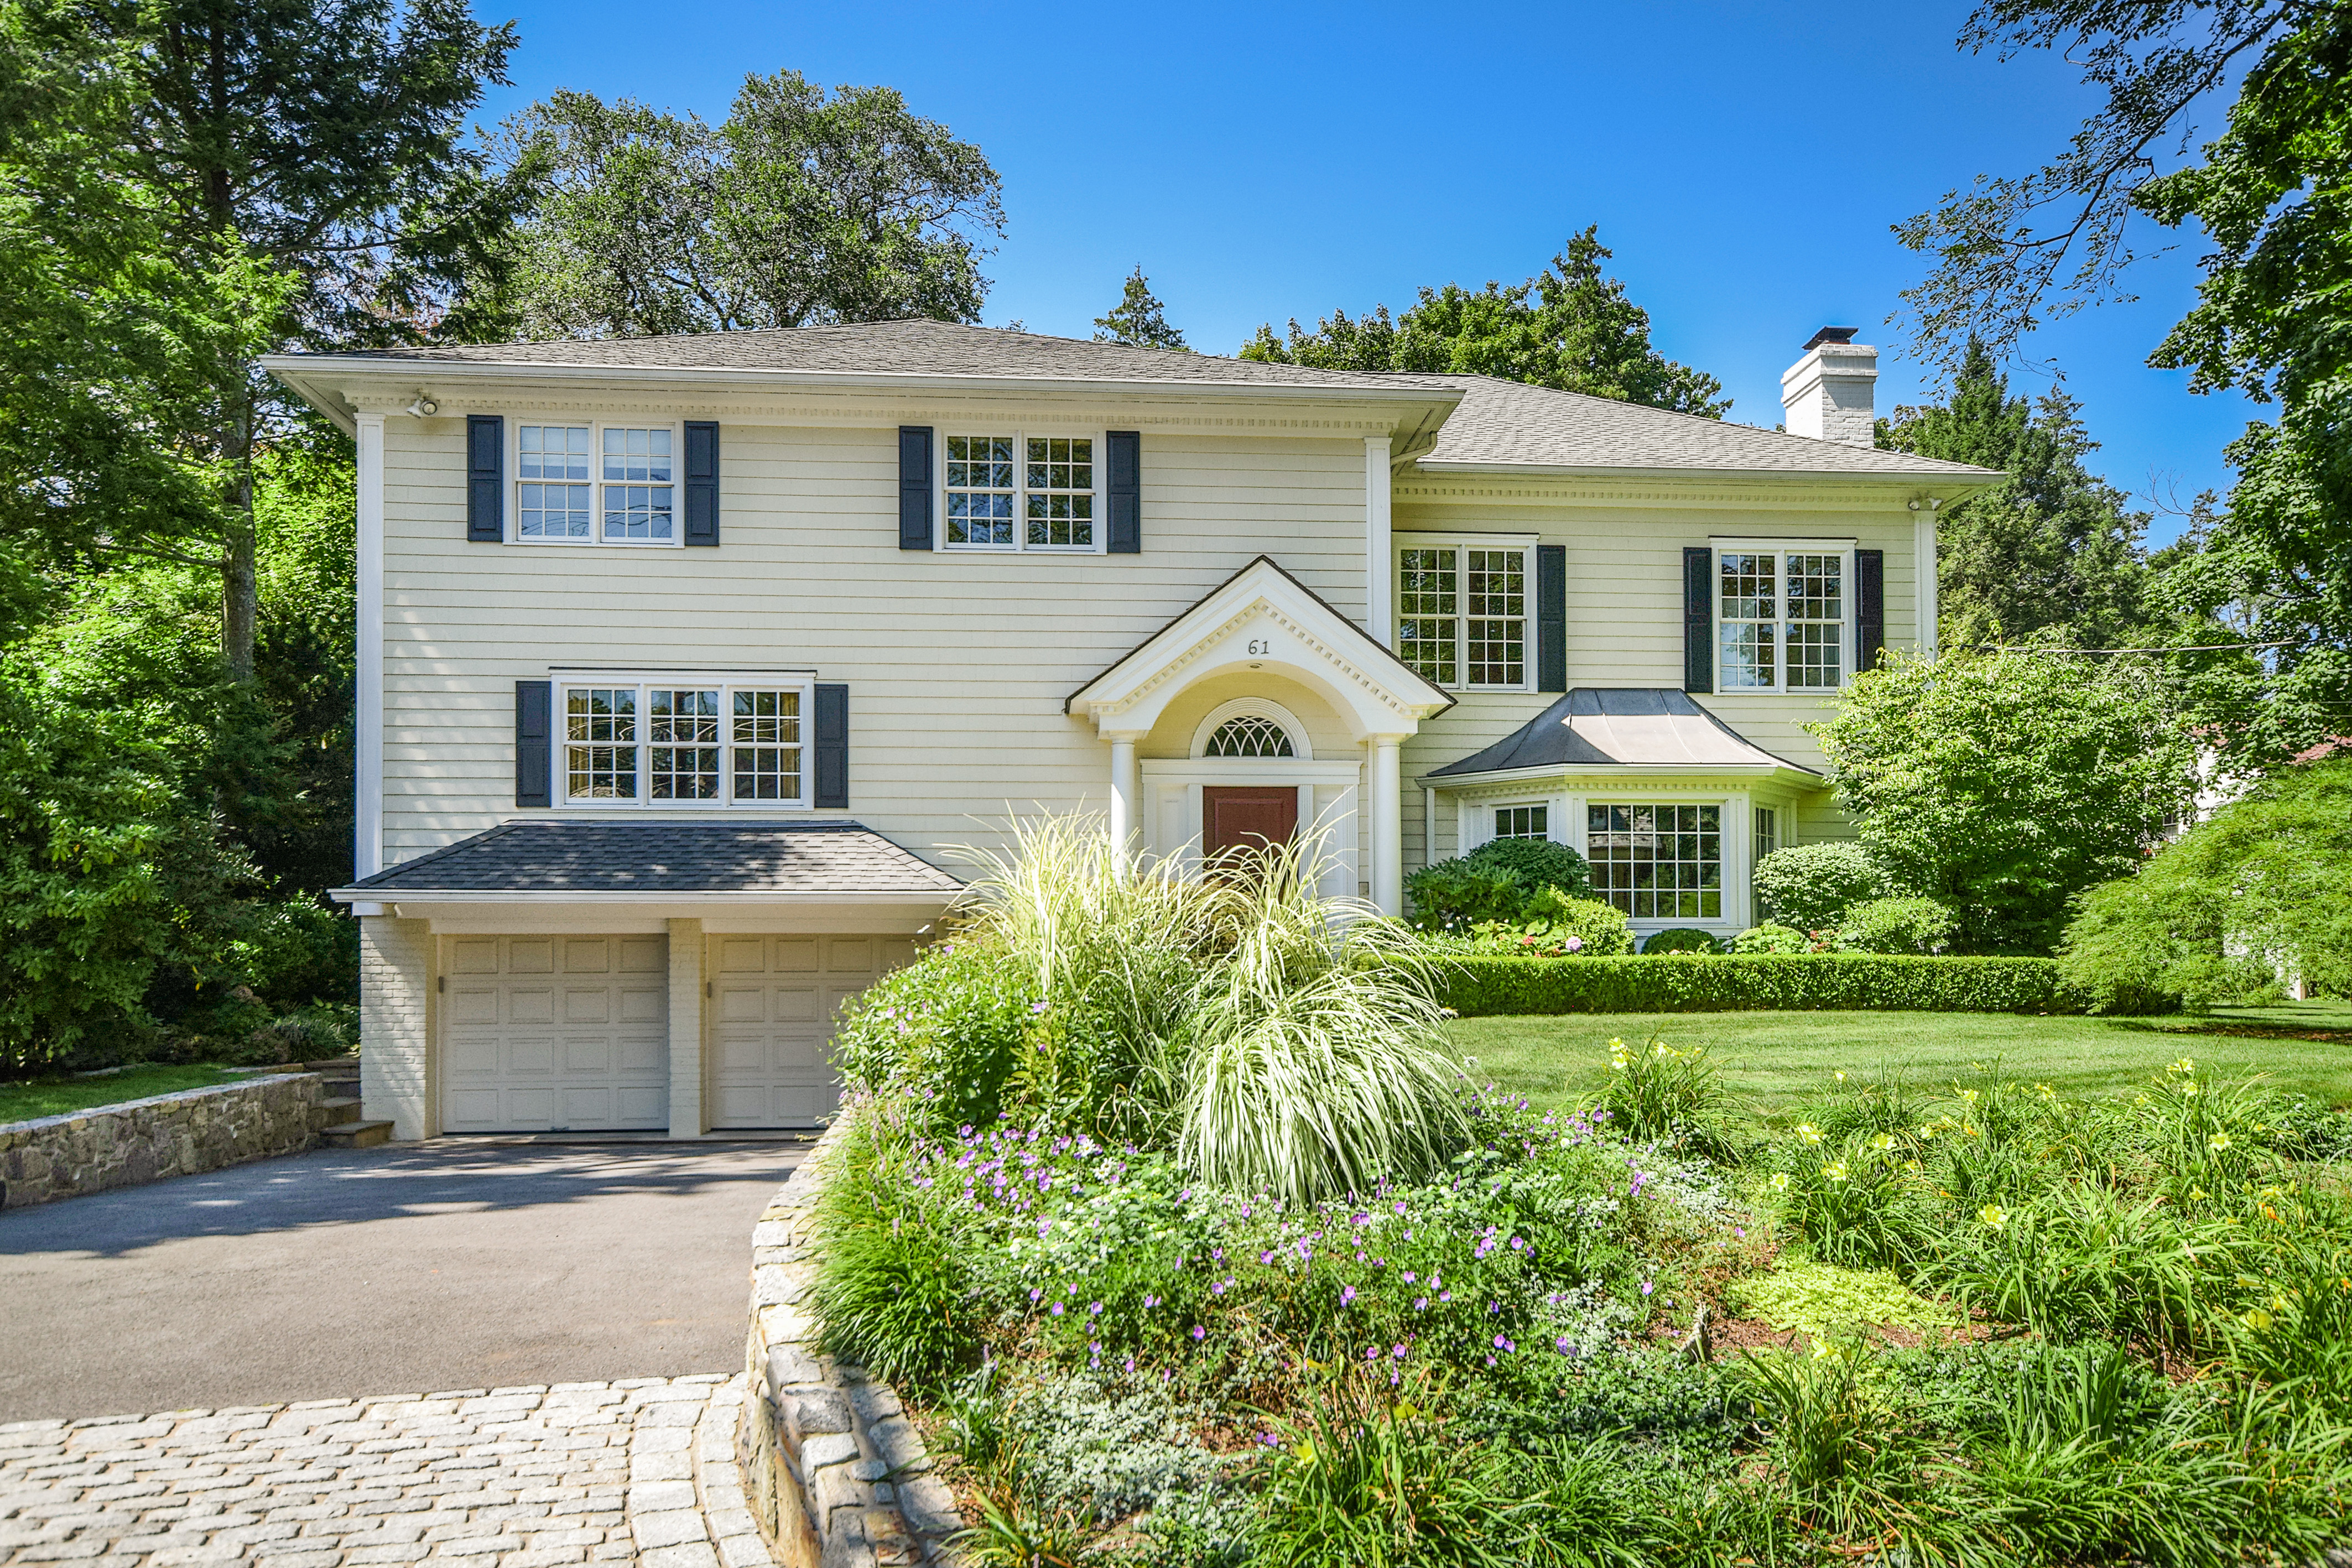 Single Family Home for Sale at Exquisite Fox Meadow Colonial 61 Church Lane Scarsdale, New York 10583 United States